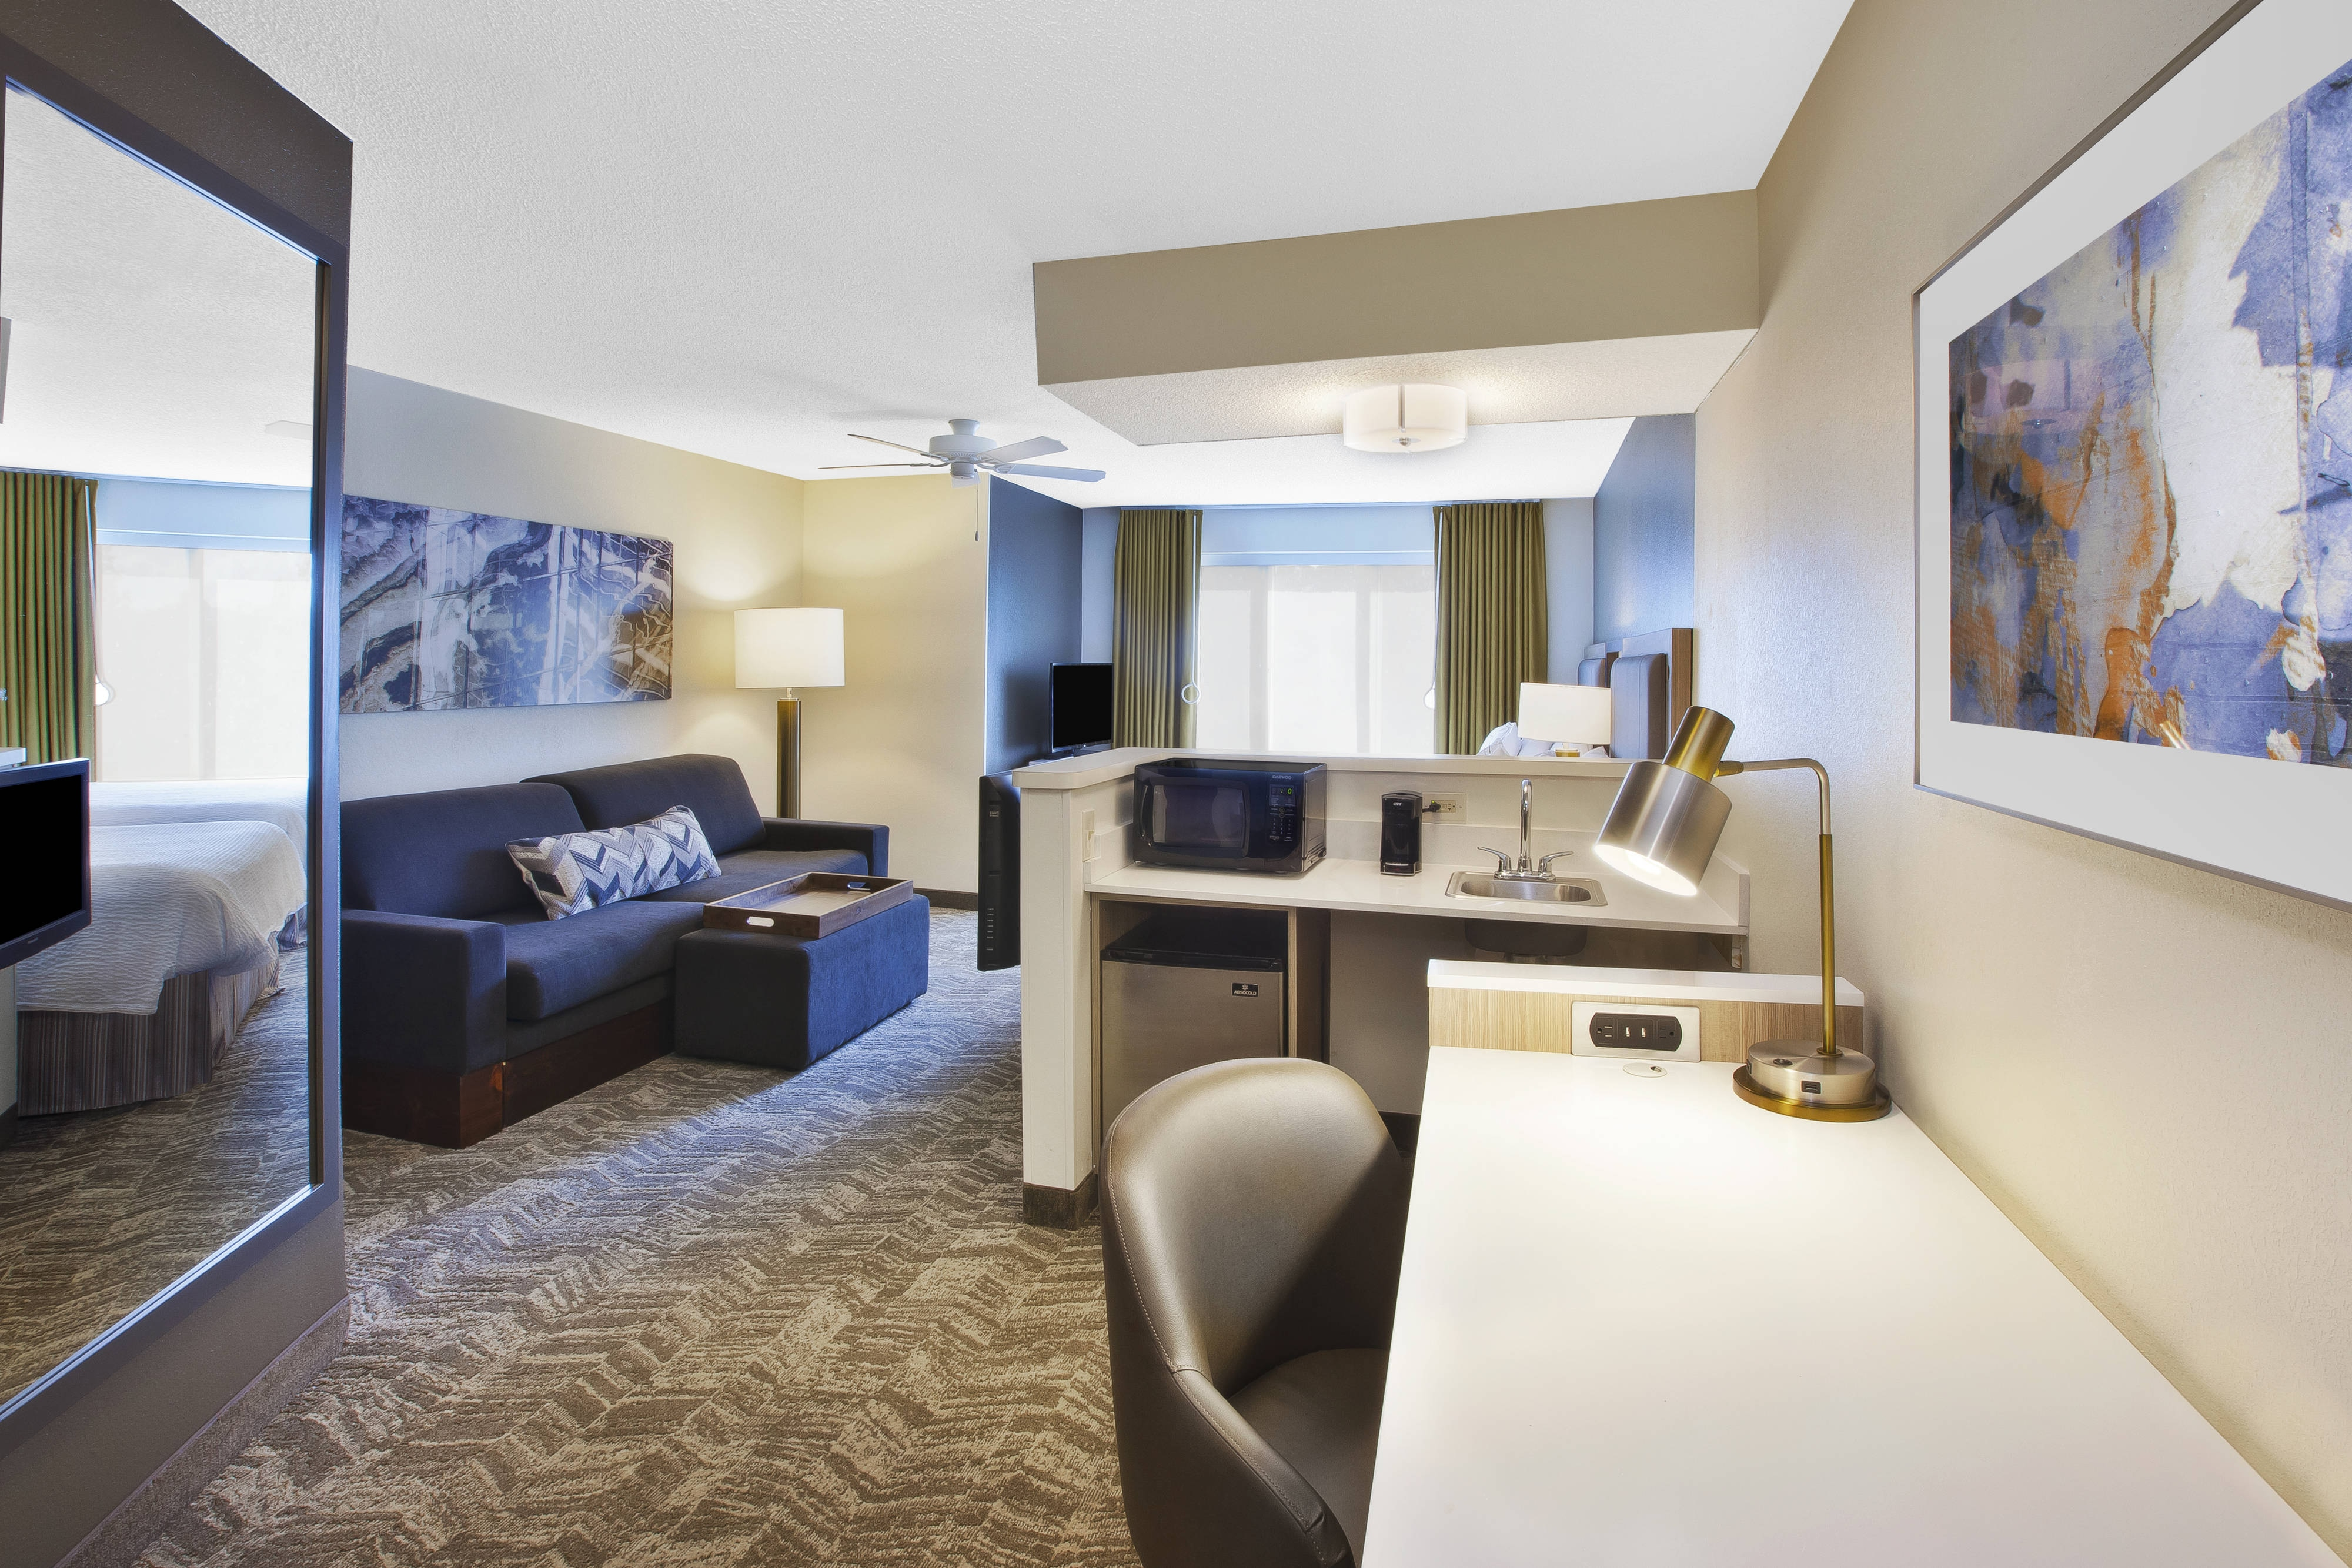 mn minneapolis inn travel residence room clsc suite hotels hotel rooms center hor city themed mspri stay extended in bedroom downtown